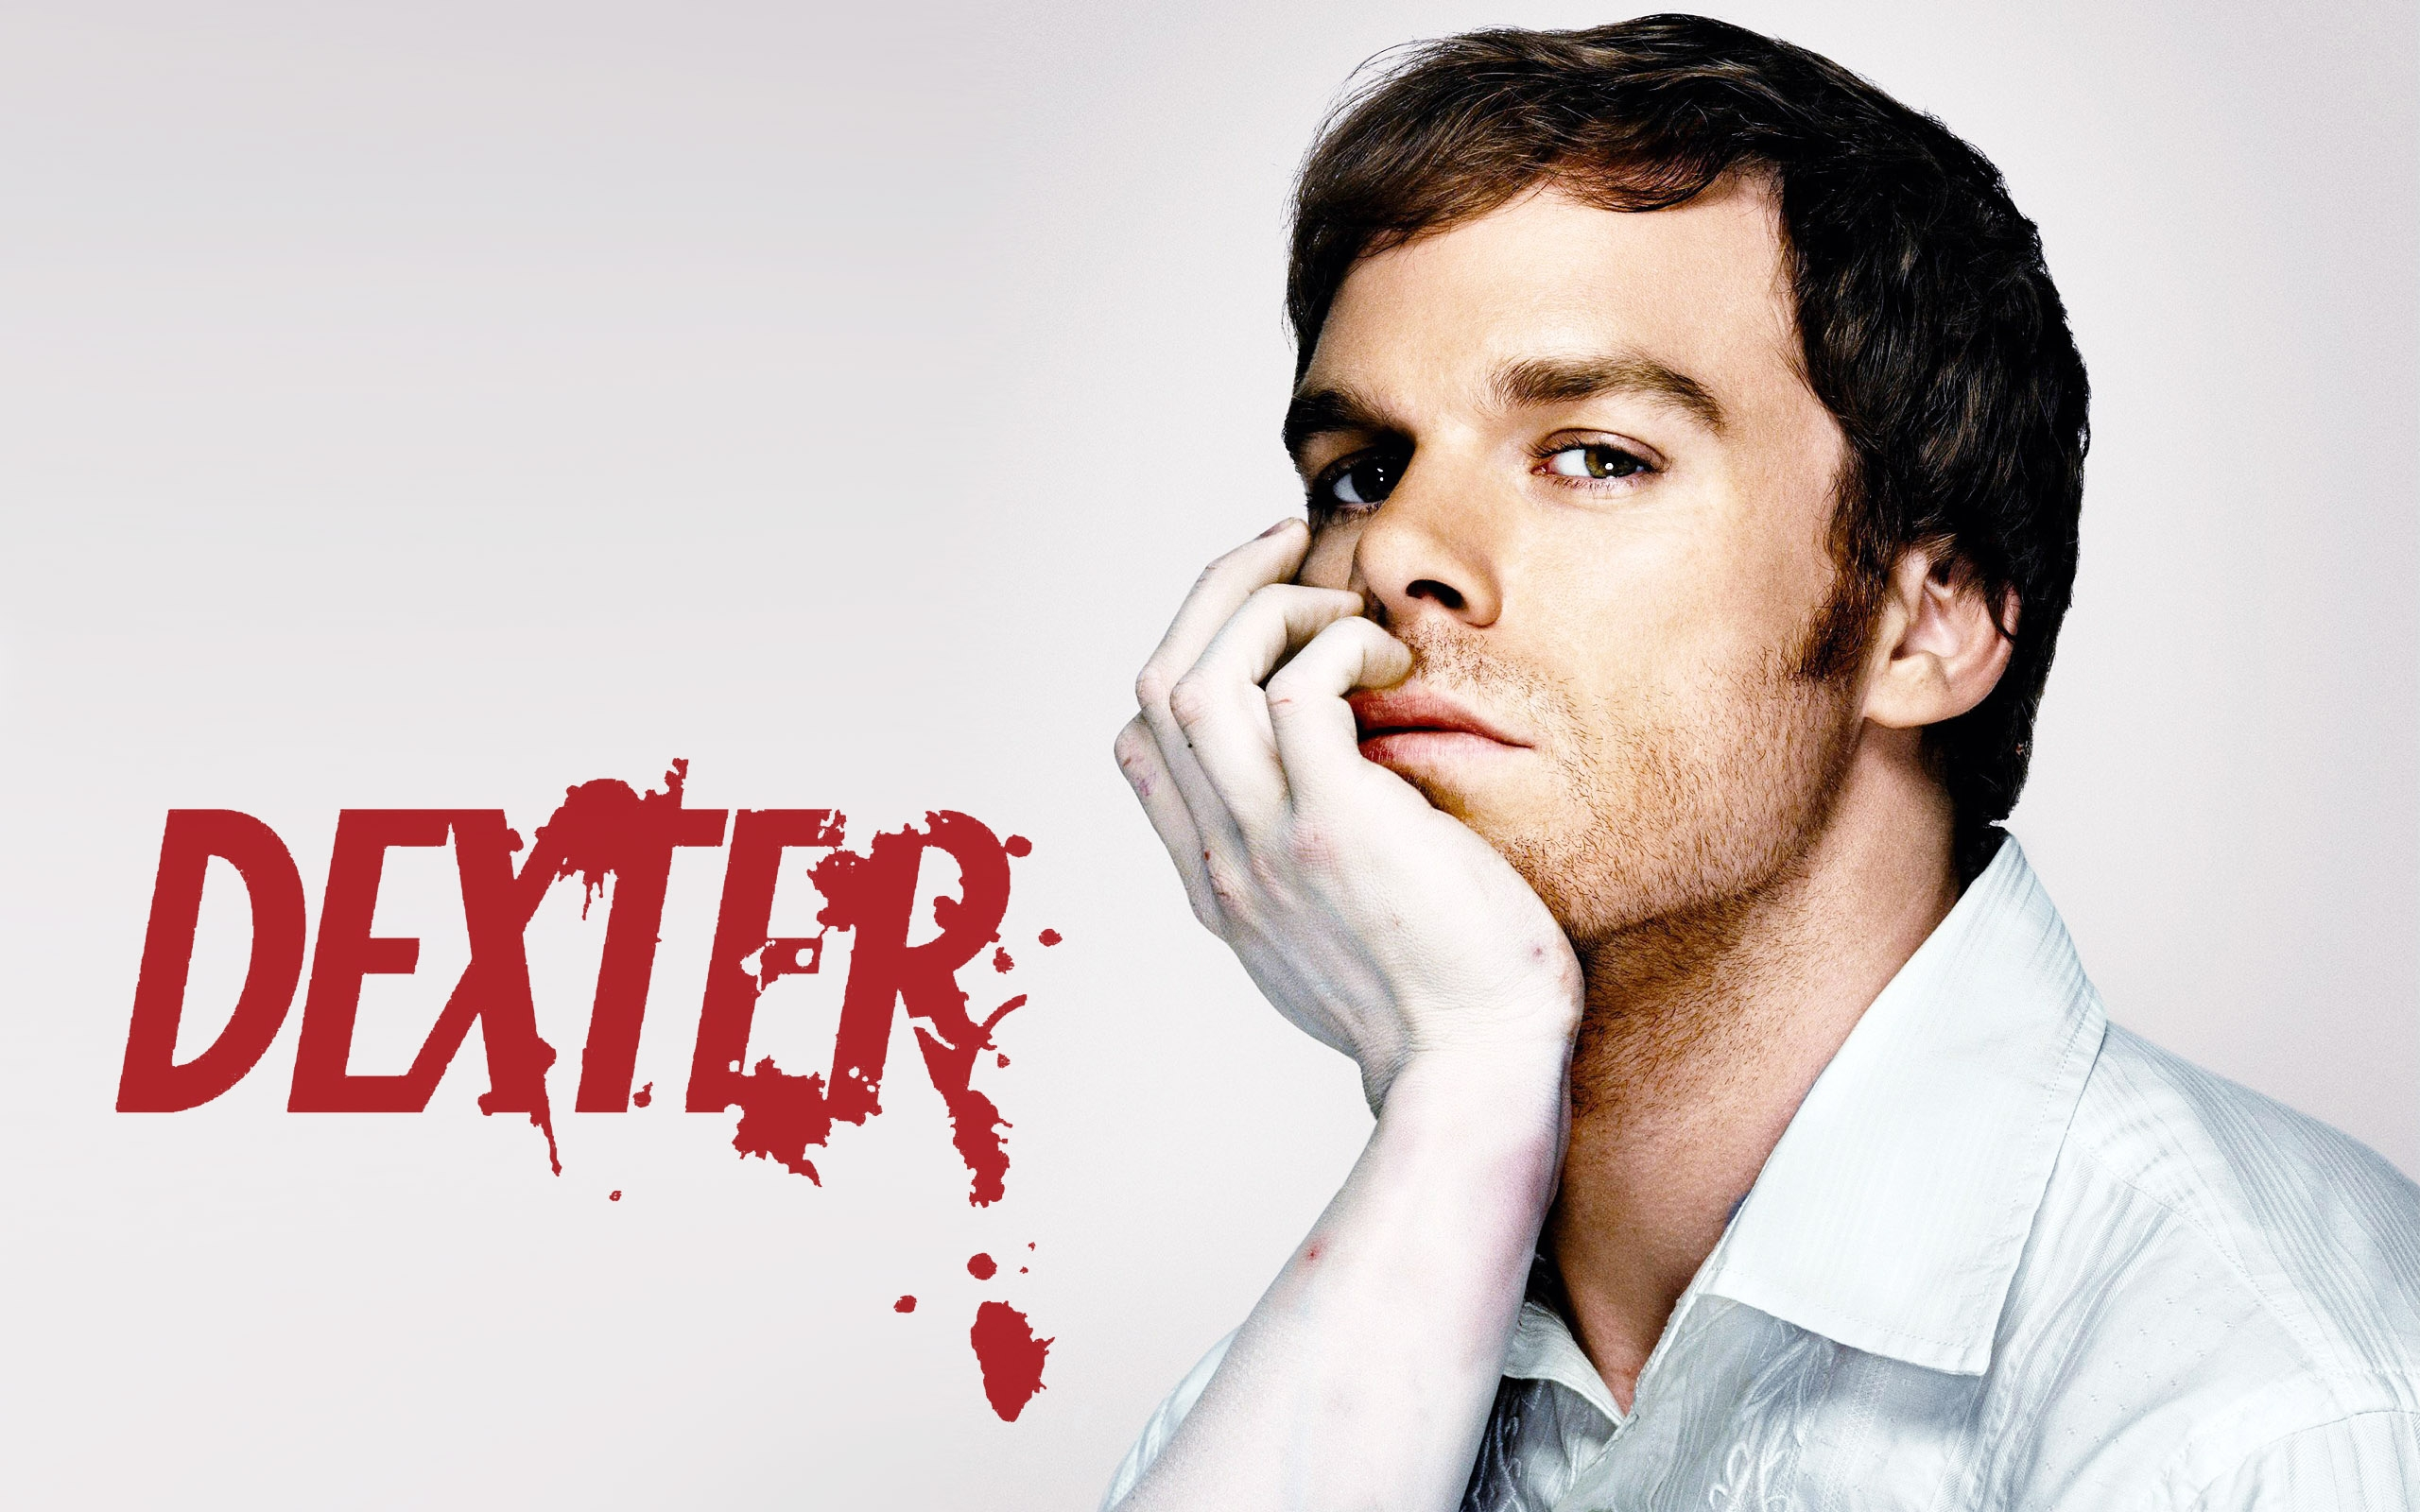 Dexter wallpaper 5